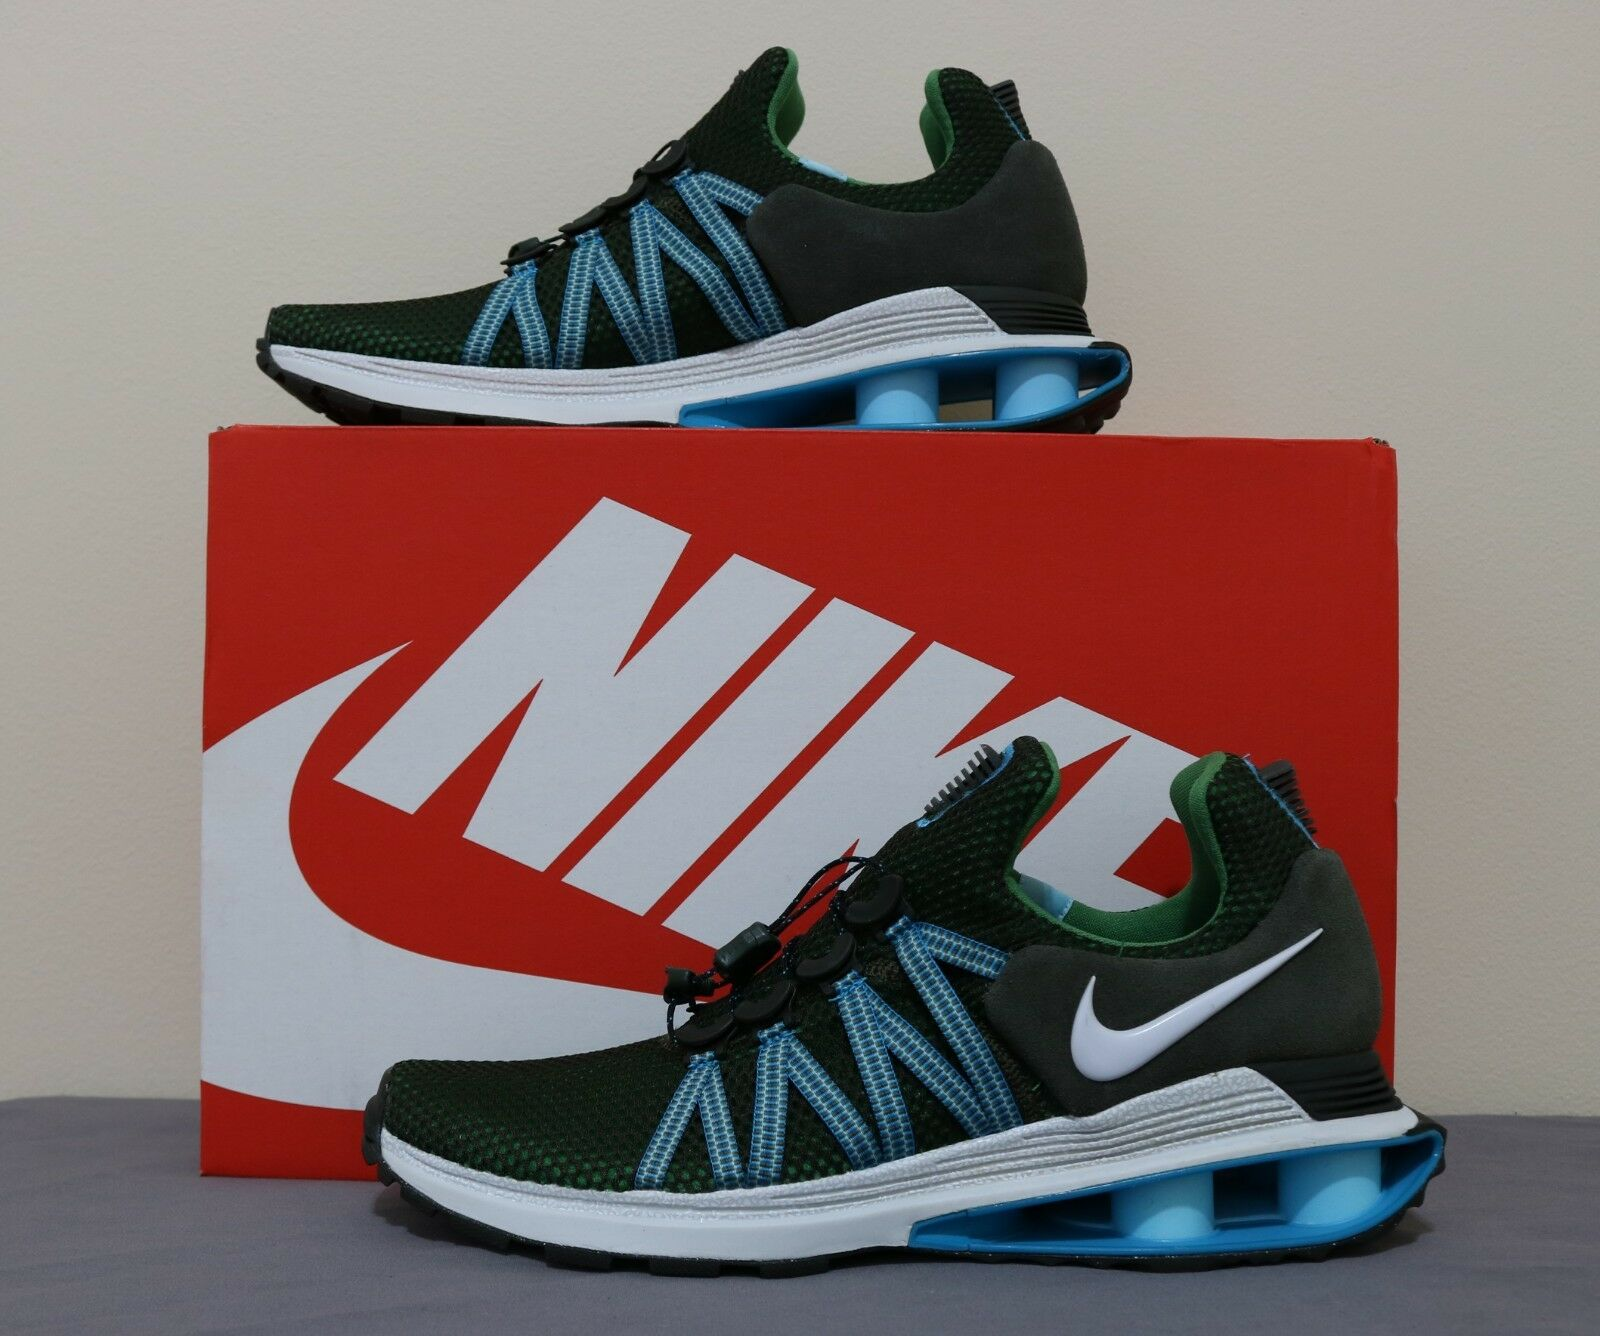 Nike Men Shox Gravity running shoes size 9 new with box AR1999300